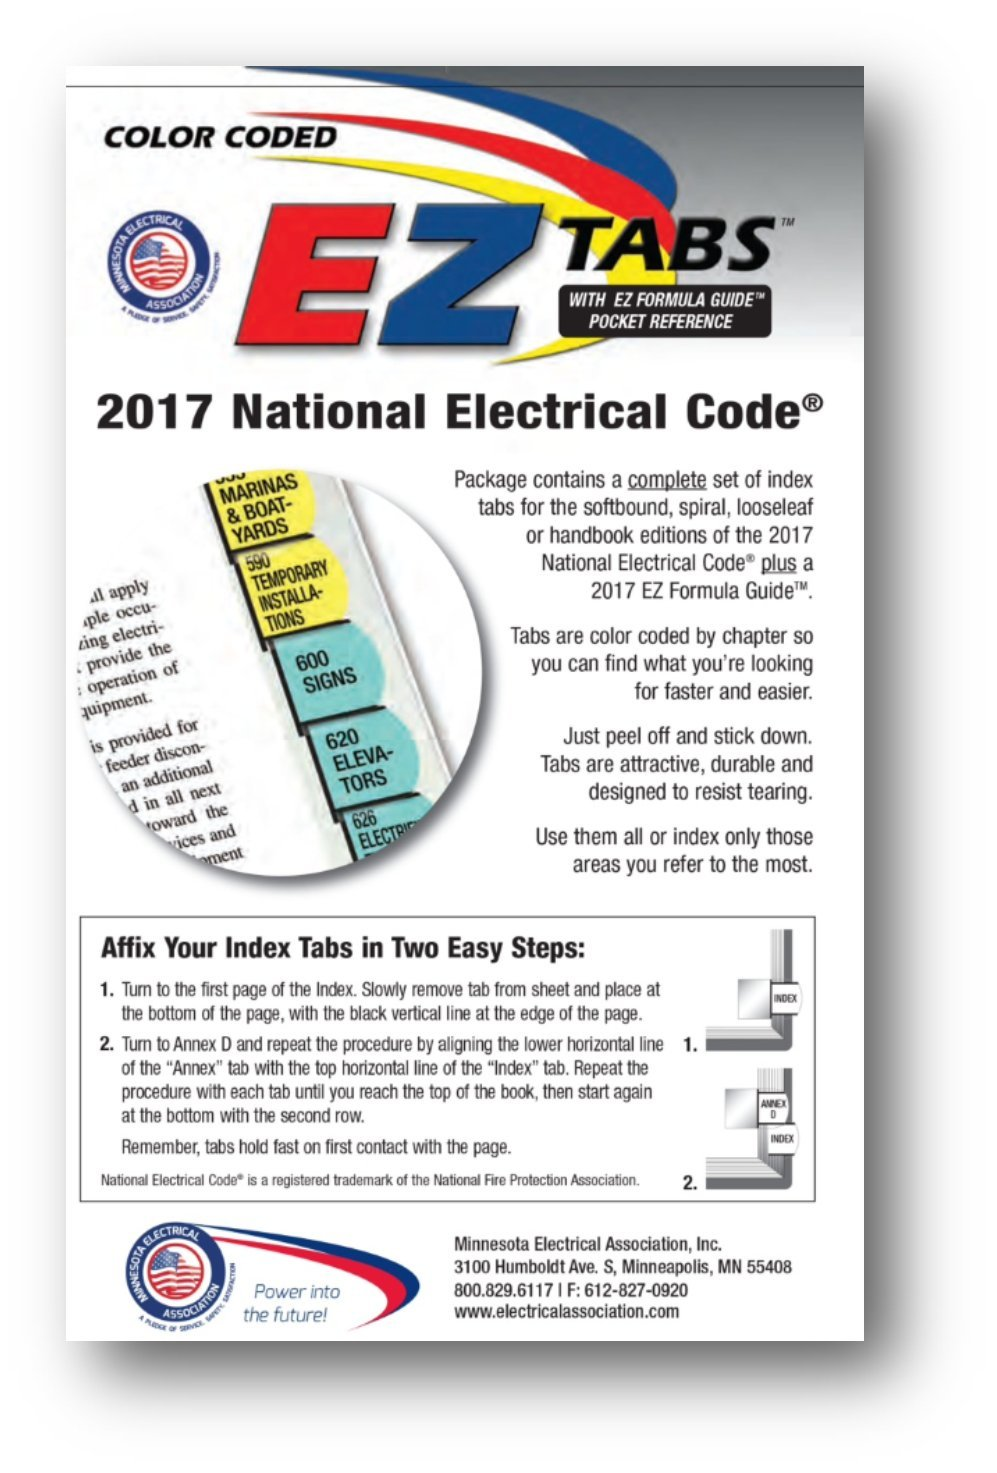 Amazon.com: EZ TABS (COLOR CODED) 2017 : National Electrical Code ...